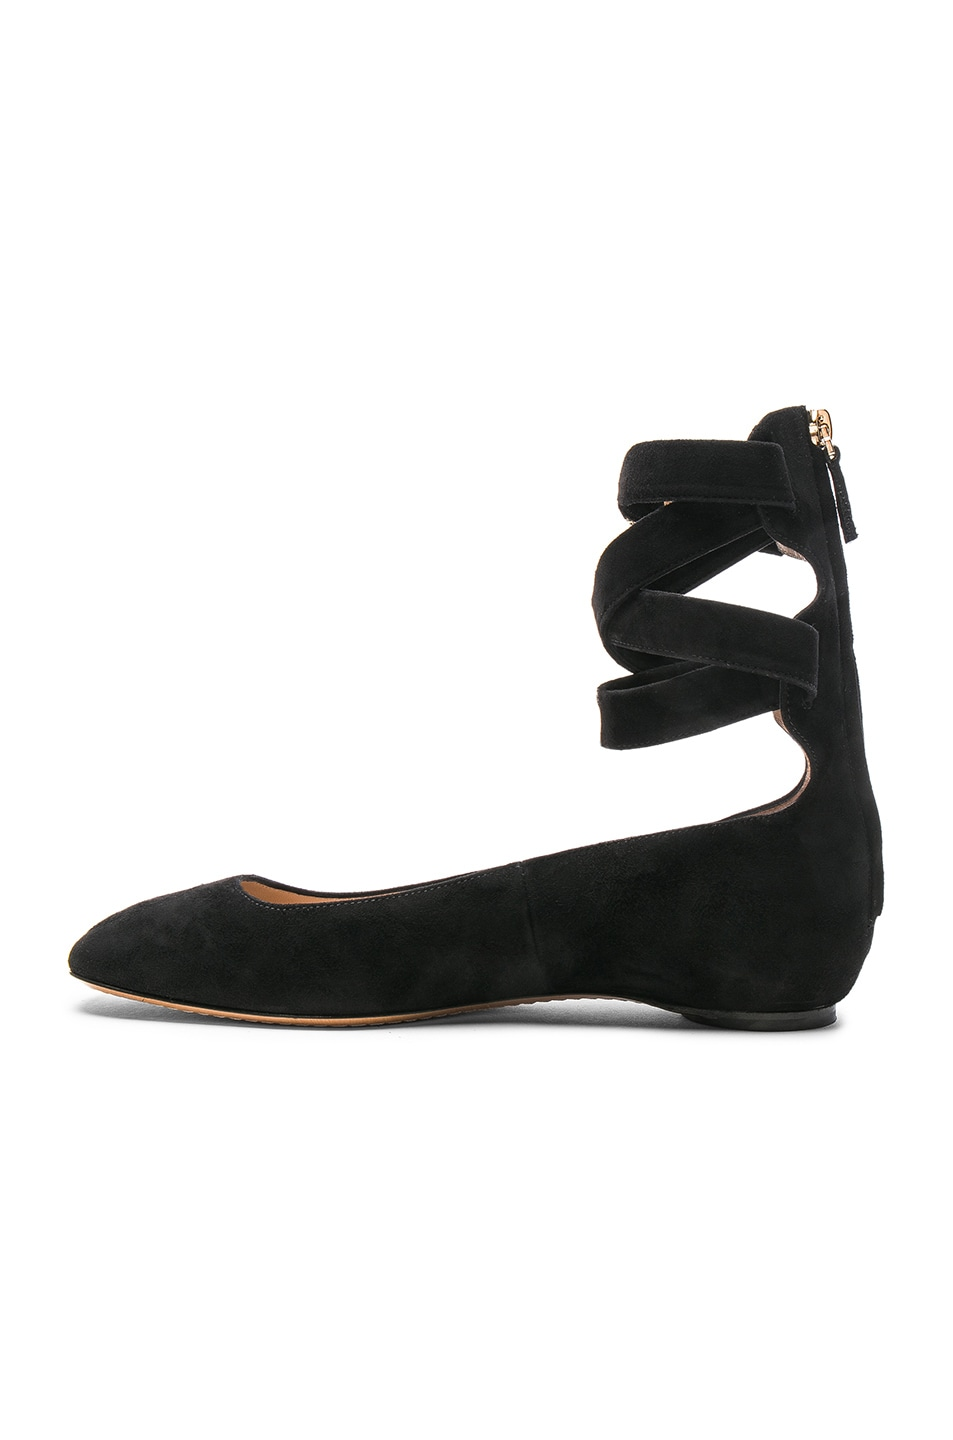 Image 5 of Valentino Suede Ankle Strap Flats in Black